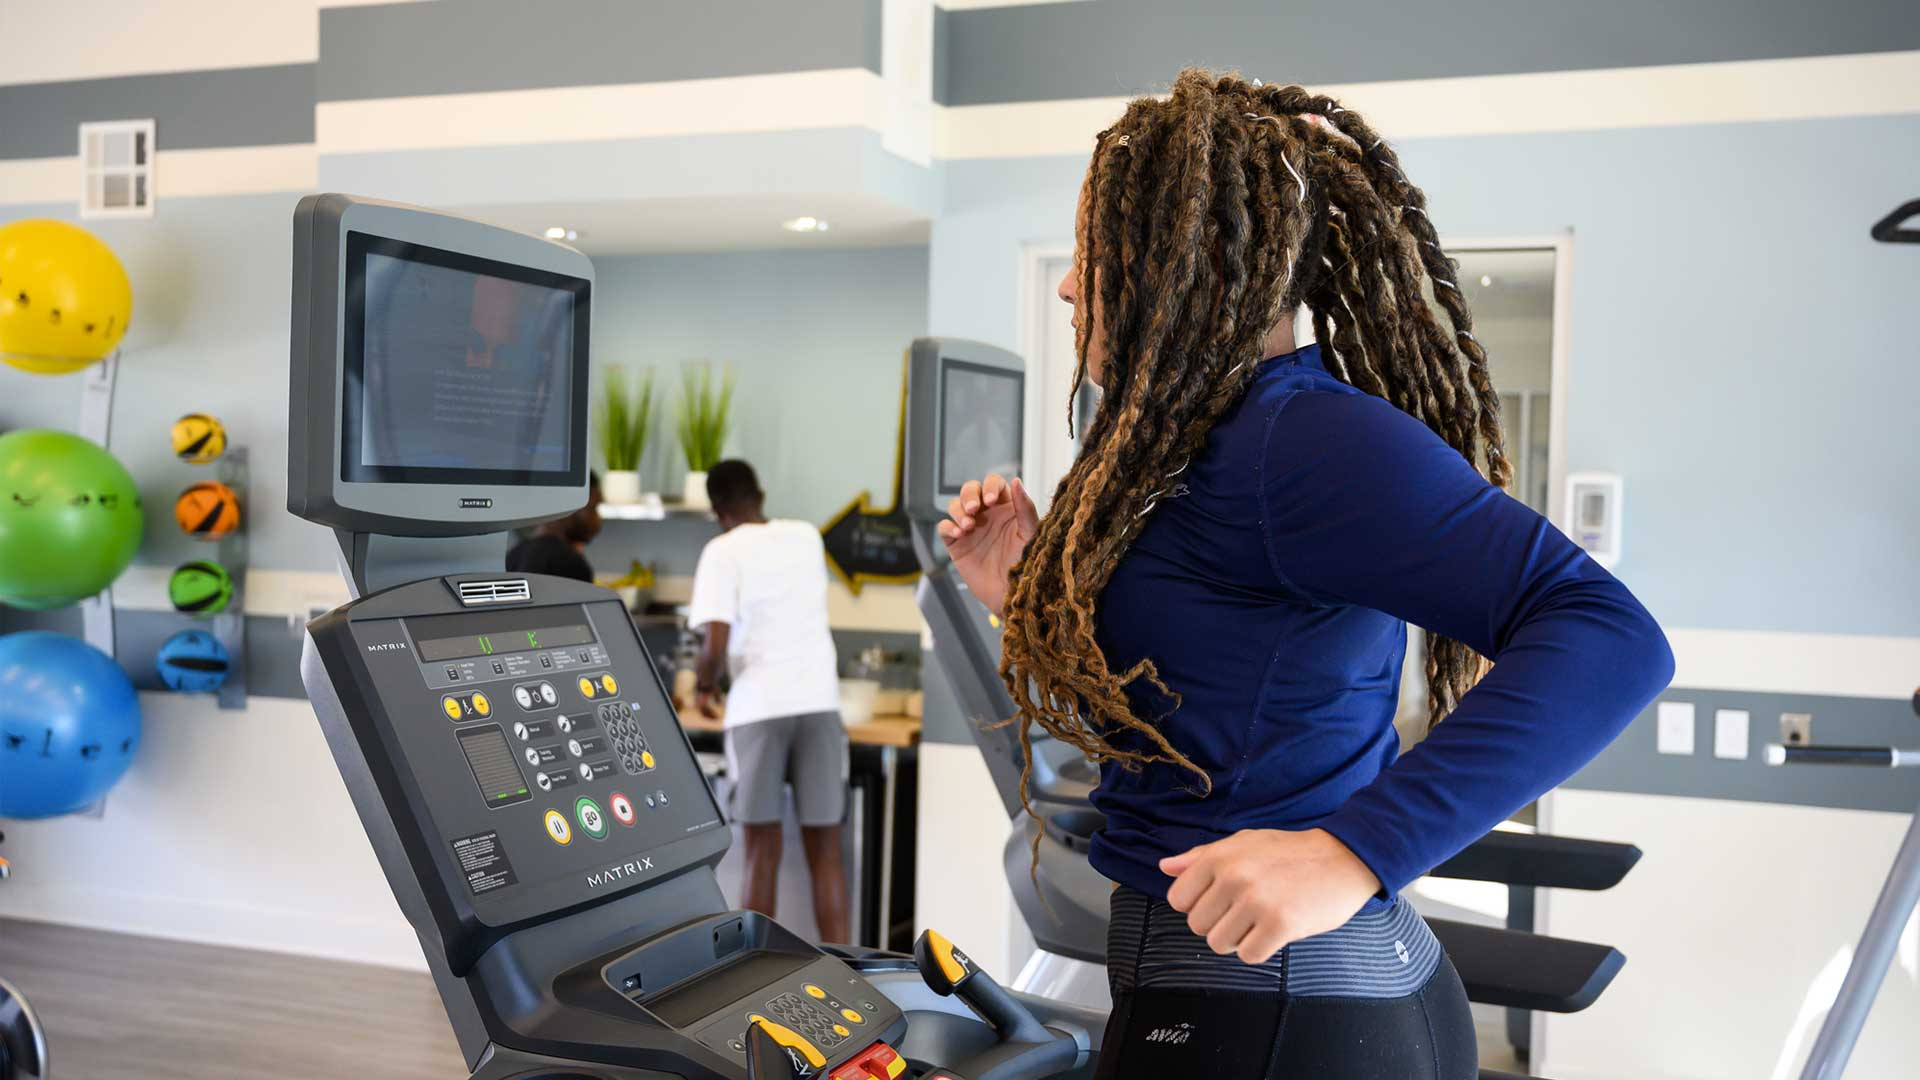 Fitness center treadmills in Rosenberg, TX